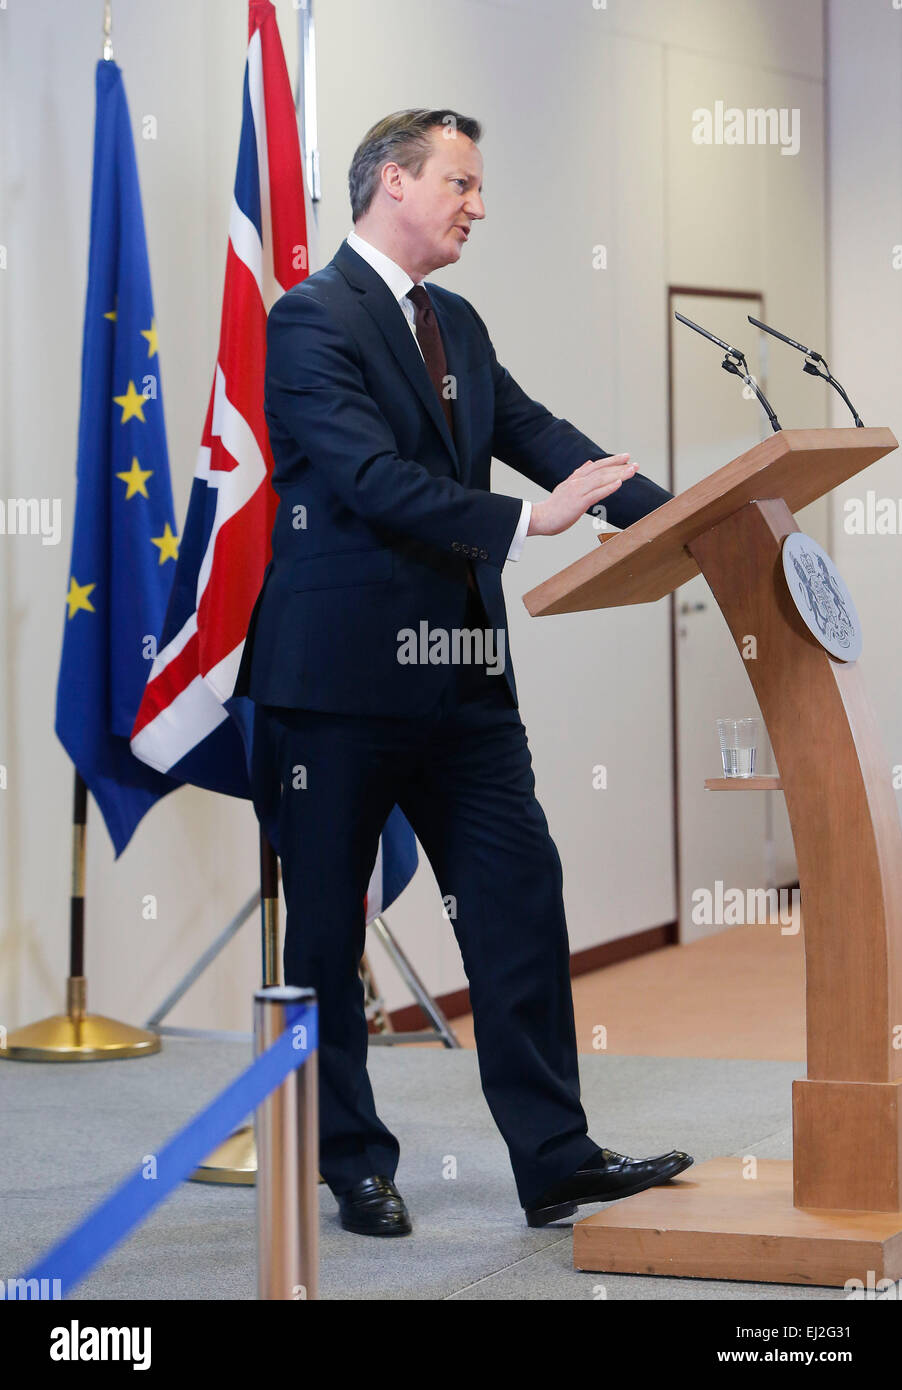 Brussels, Belgium. 20th Mar, 2015. British Prime Minister David Cameron speaks during a press conference after the - Stock Image